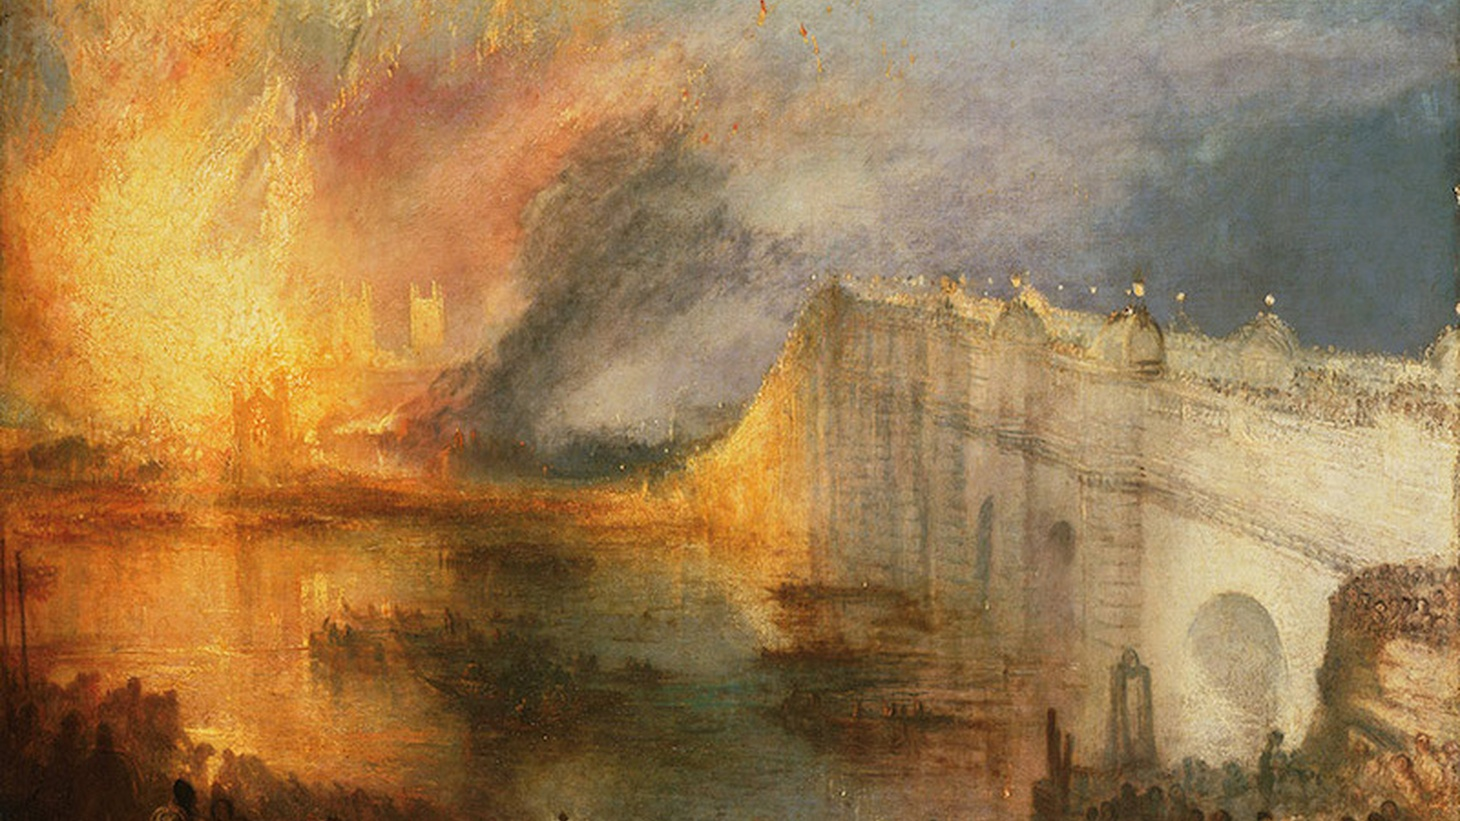 The new exhibition of works by British painter Turner at The Getty Museum proves this great artist is still sending waves into the 21st century art scene.